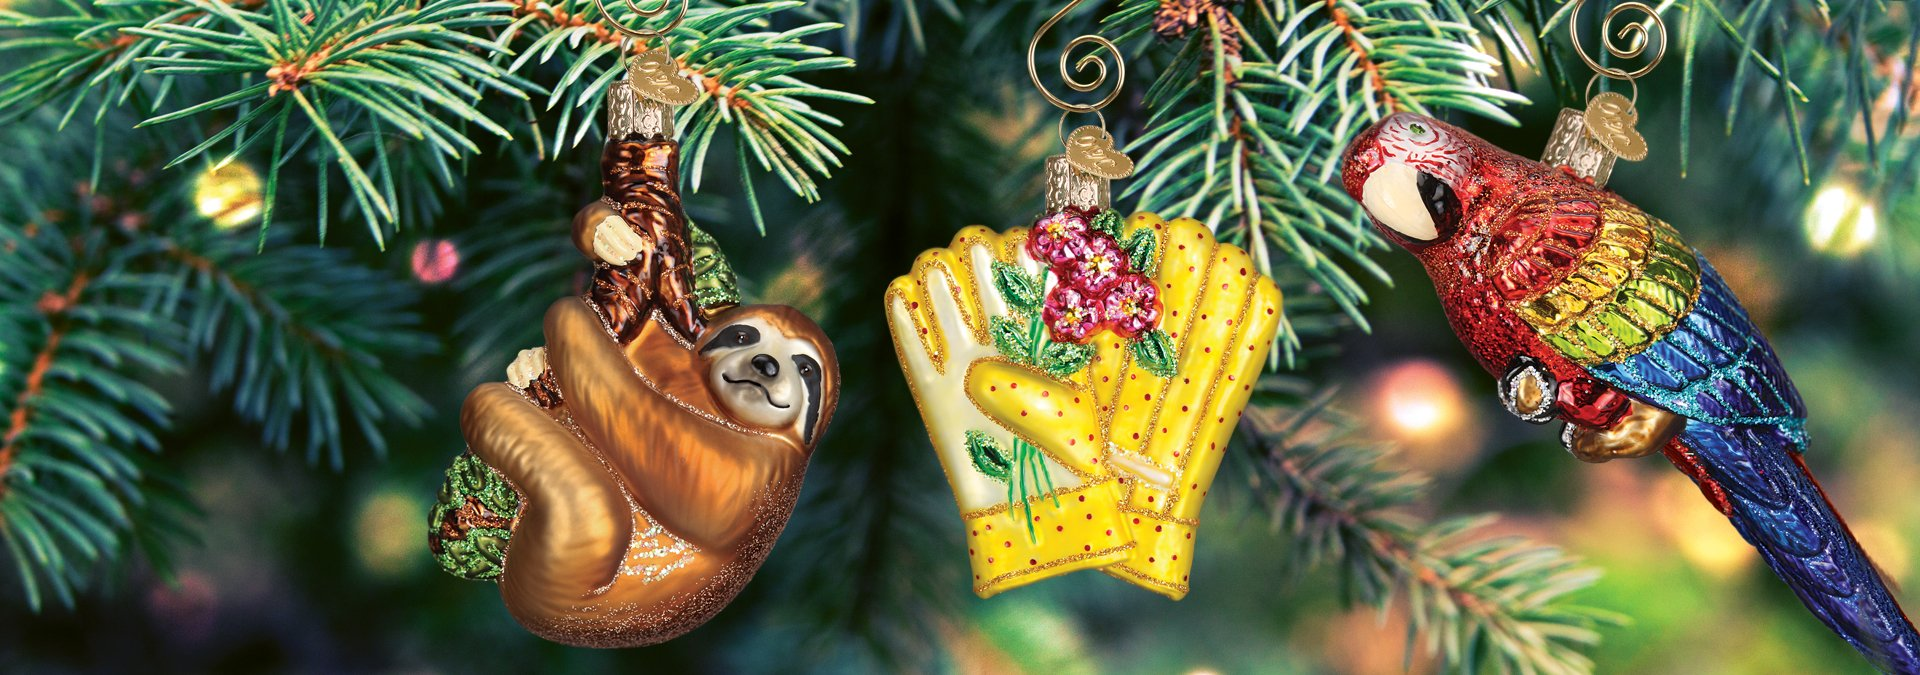 Hanging Ornaments on a Christmas Tree is Easier Than You Think